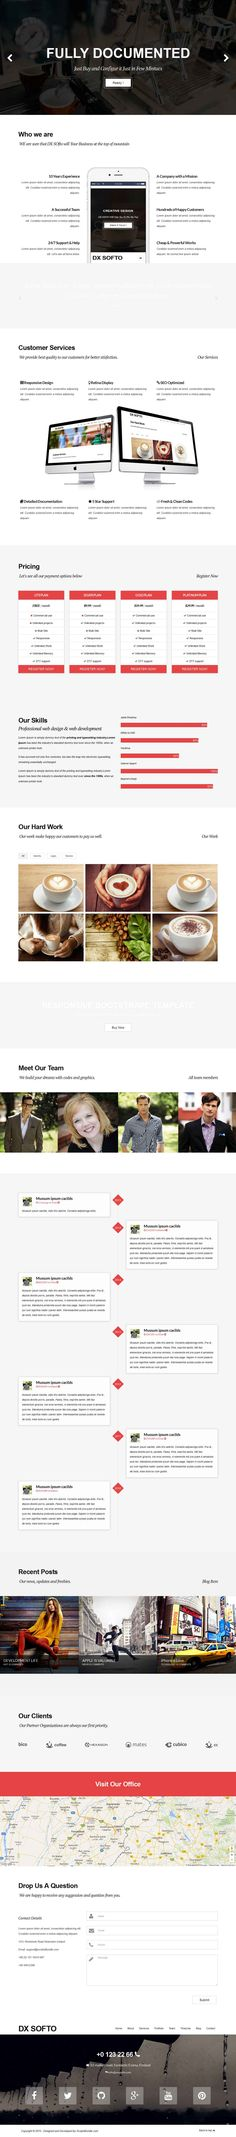 Dx Softo is a powerful and original responsive & parallax HTML template. An eye for a detail makes its design perfect to meet needs of creative people, digital agencies and services. Exline uses Bootstrap 3 and has been coded in HTML5 & CSS3  This Template is designed in a Clean and Minimalistic Style. It is Fully responsive, Very Flexible, Easy for Customizing and Well Documented.